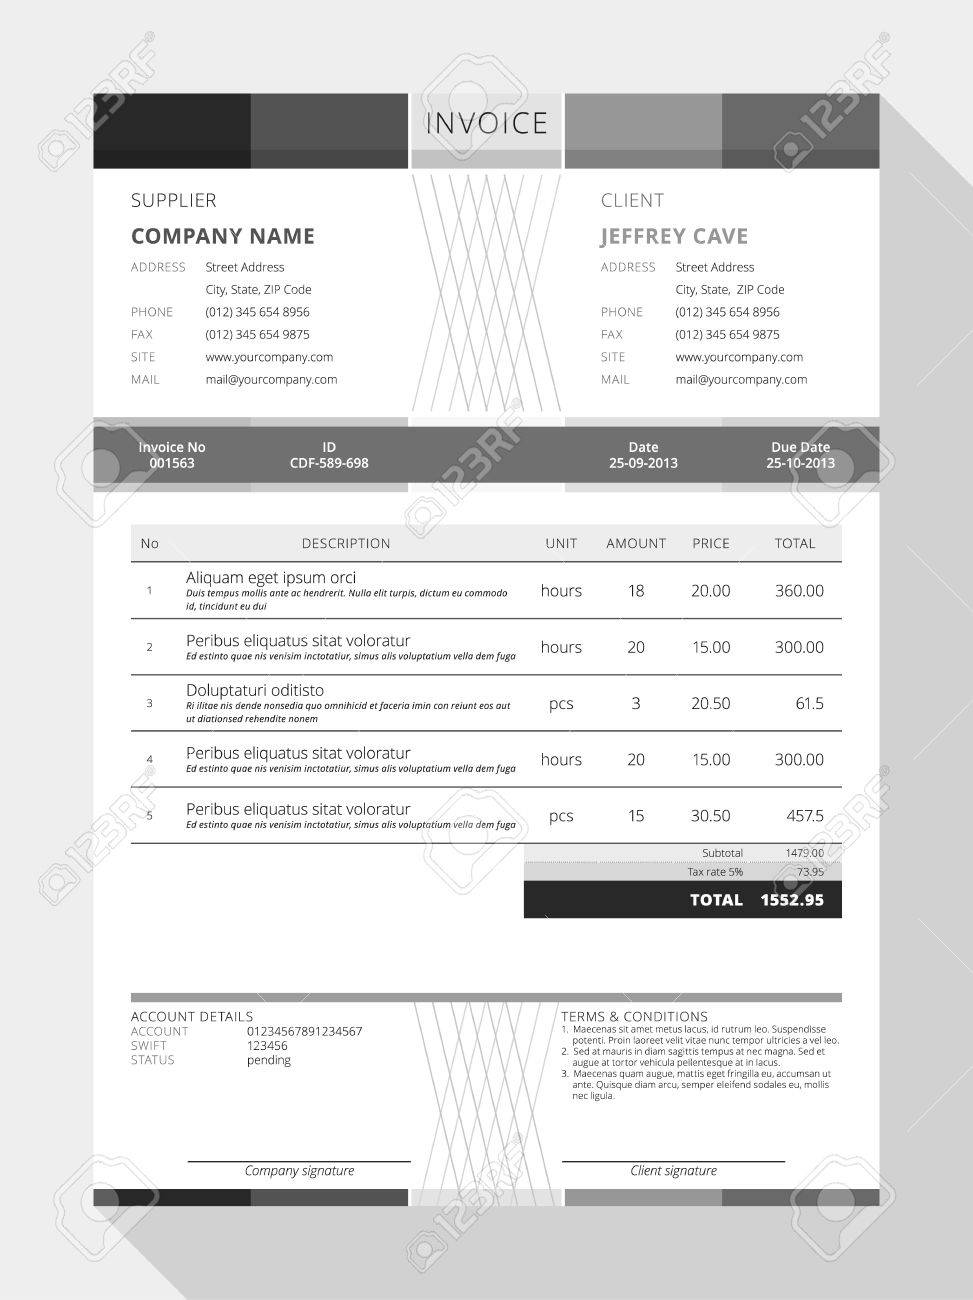 Reliefworkersus  Picturesque Design An Invoice  Professional Graphic Design Invoice  With Outstanding Vector Customizable Invoice Form Template Design Vector   Design An Invoice With Alluring Rental Invoice Format Also Performa Invoice Format In Addition Dot Net Invoice And Invoicement As Well As Triplicate Invoice Books Additionally What Is Invoice Finance From Happytomco With Reliefworkersus  Outstanding Design An Invoice  Professional Graphic Design Invoice  With Alluring Vector Customizable Invoice Form Template Design Vector   Design An Invoice And Picturesque Rental Invoice Format Also Performa Invoice Format In Addition Dot Net Invoice From Happytomco